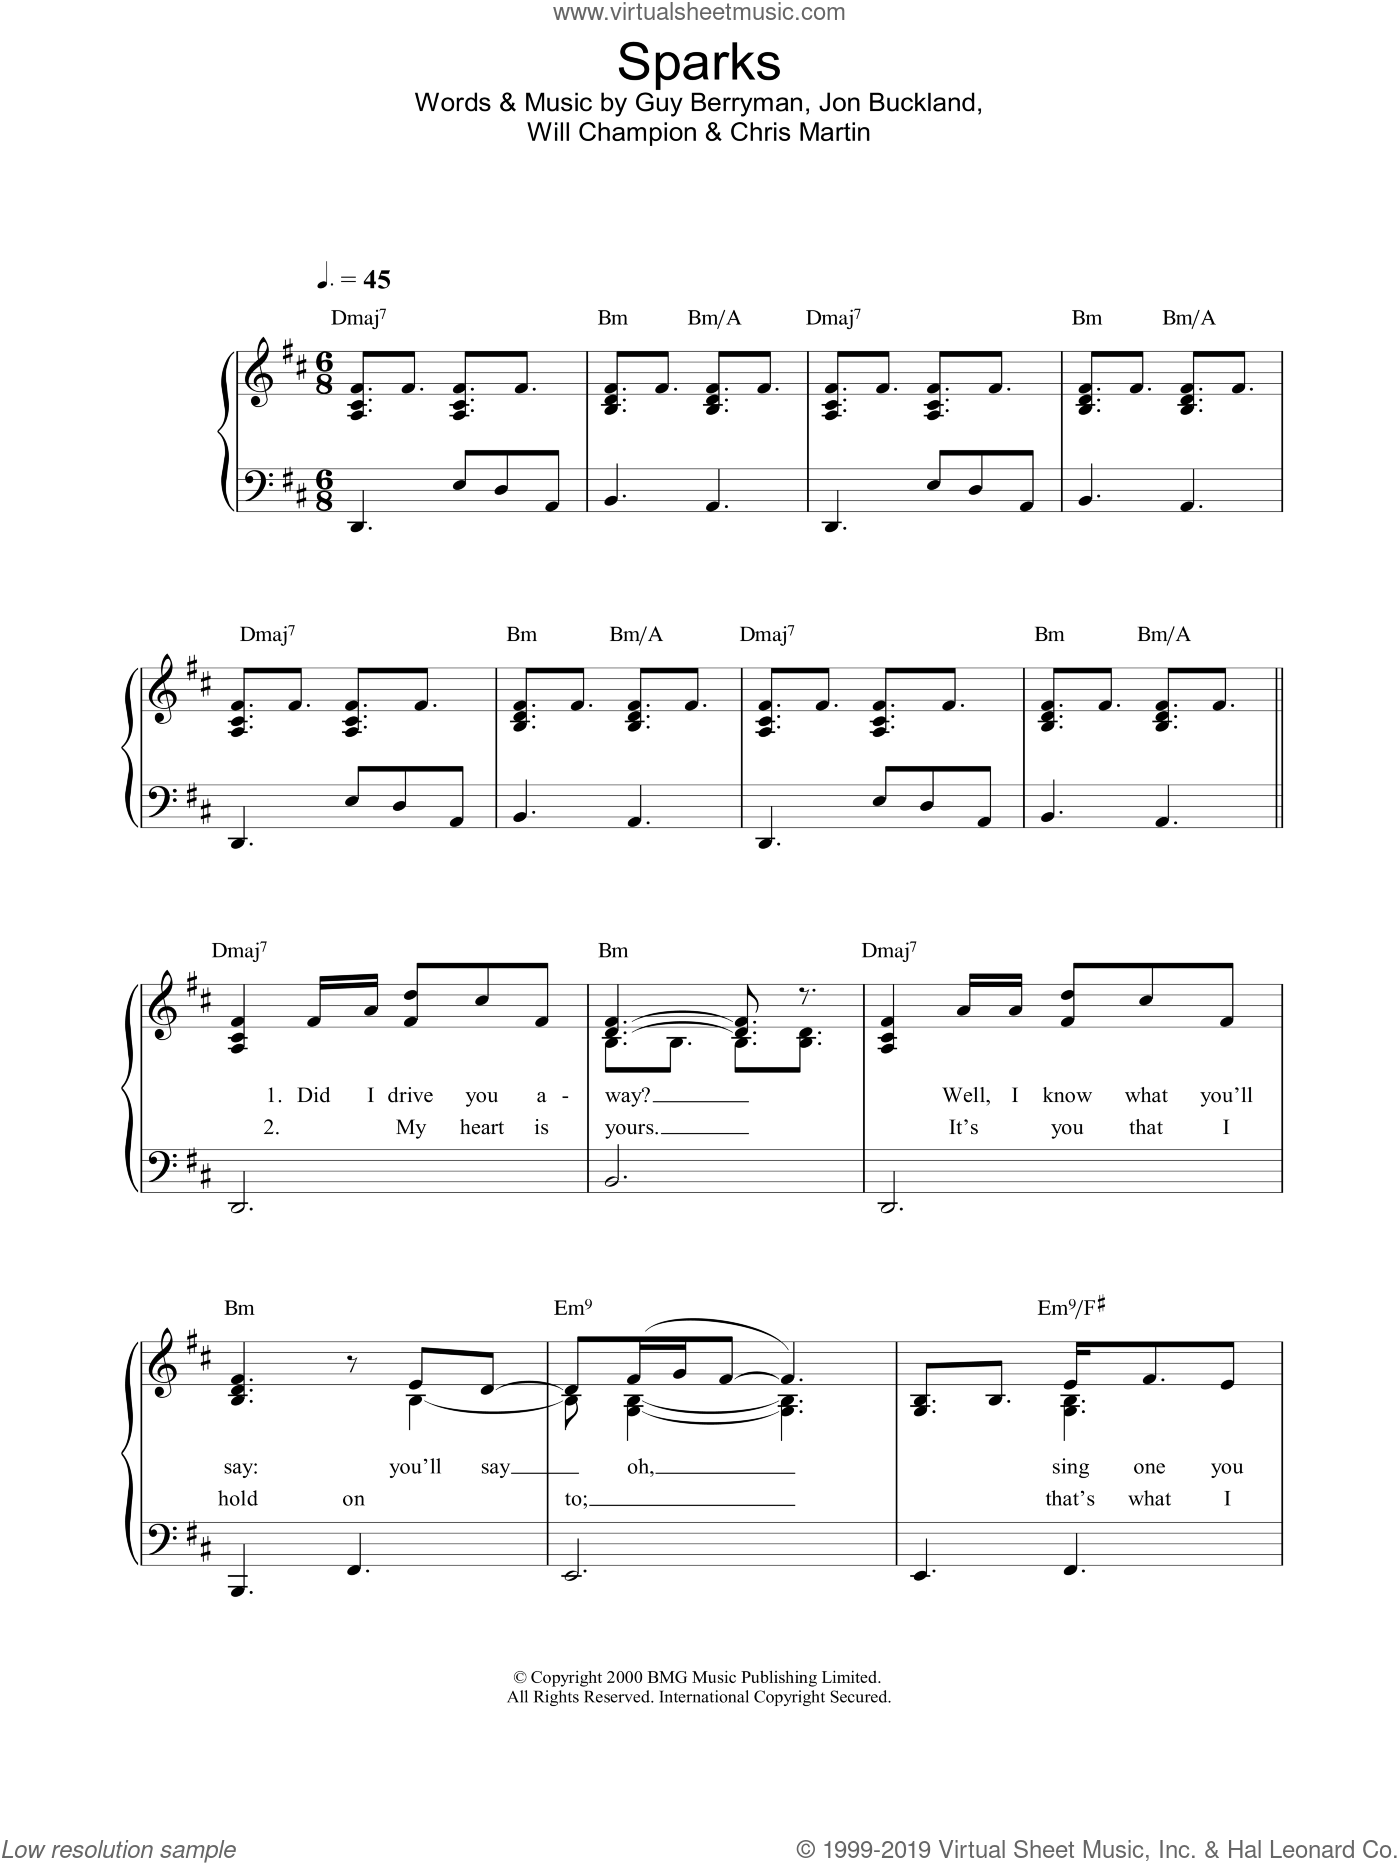 Sparks sheet music for piano solo by Coldplay, Berryman,Guy, Buckland,Jon, Chris Martin, Guy Berryman, Jon Buckland and Will Champion, easy skill level